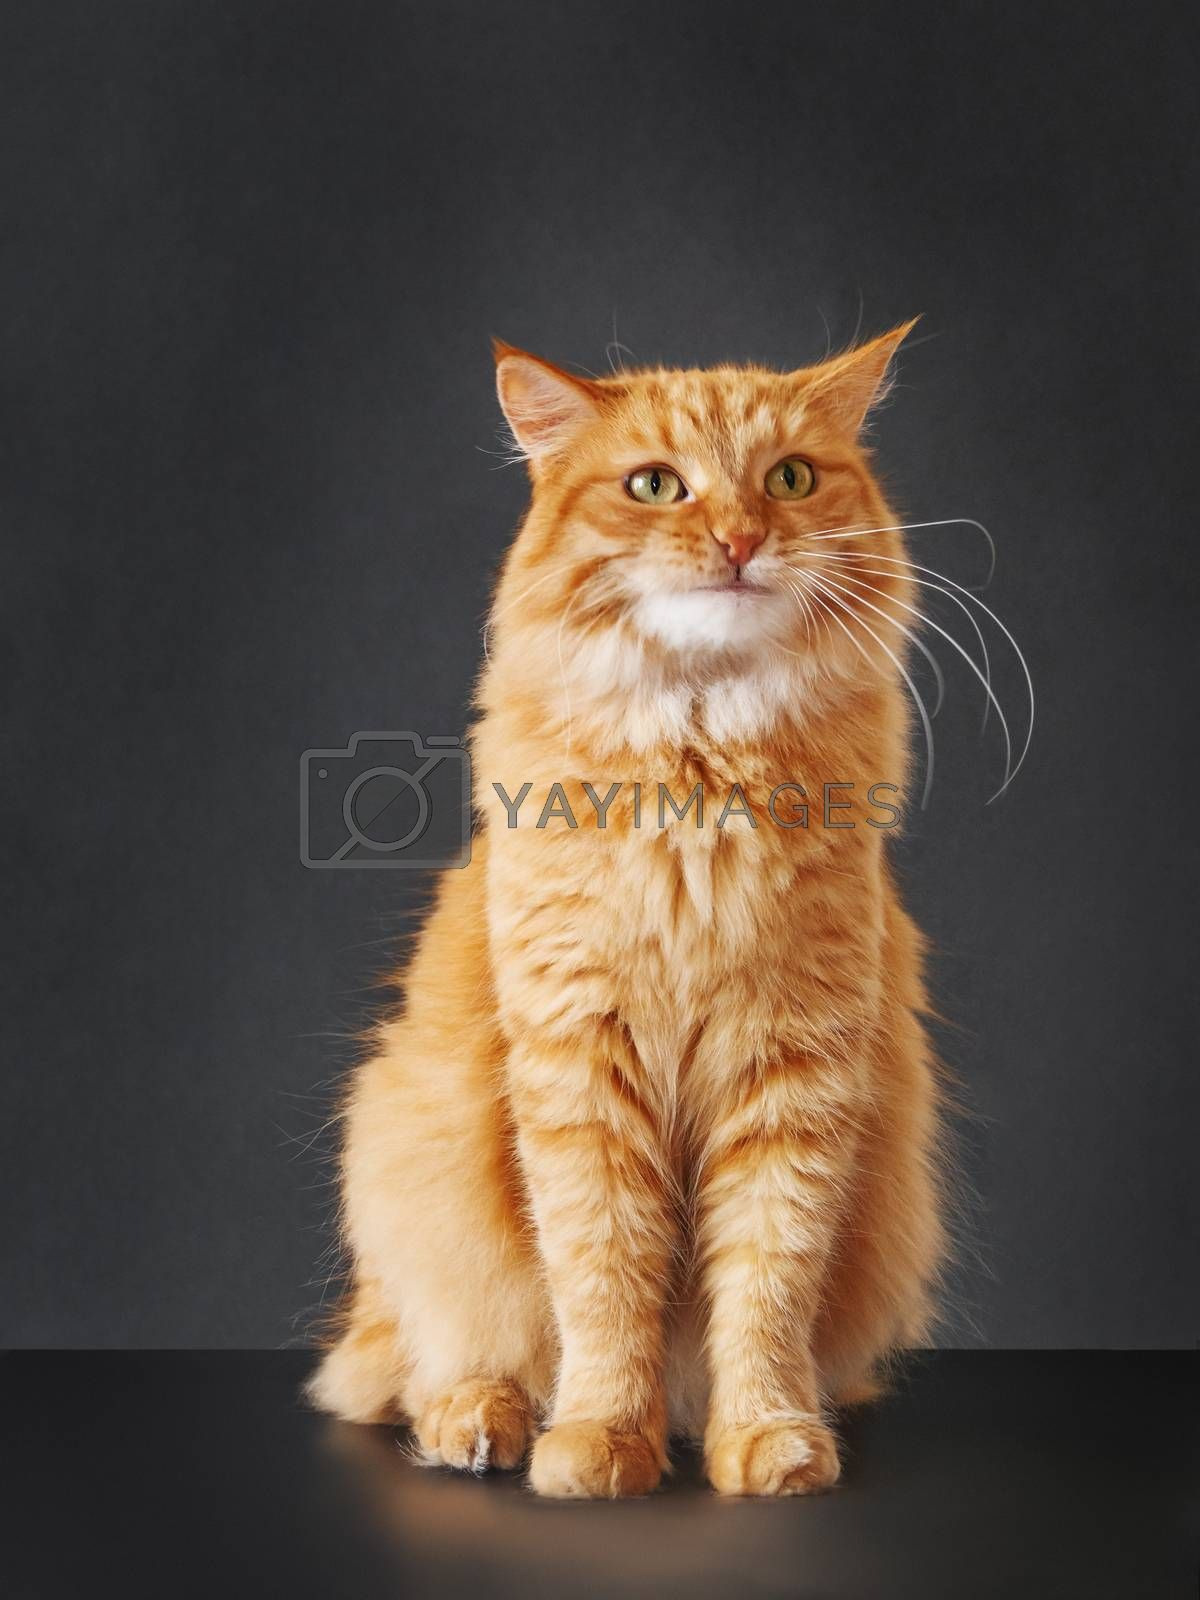 Cute ginger cat with awesome expression on face posing like lion on black background. Symbol of your inner self.